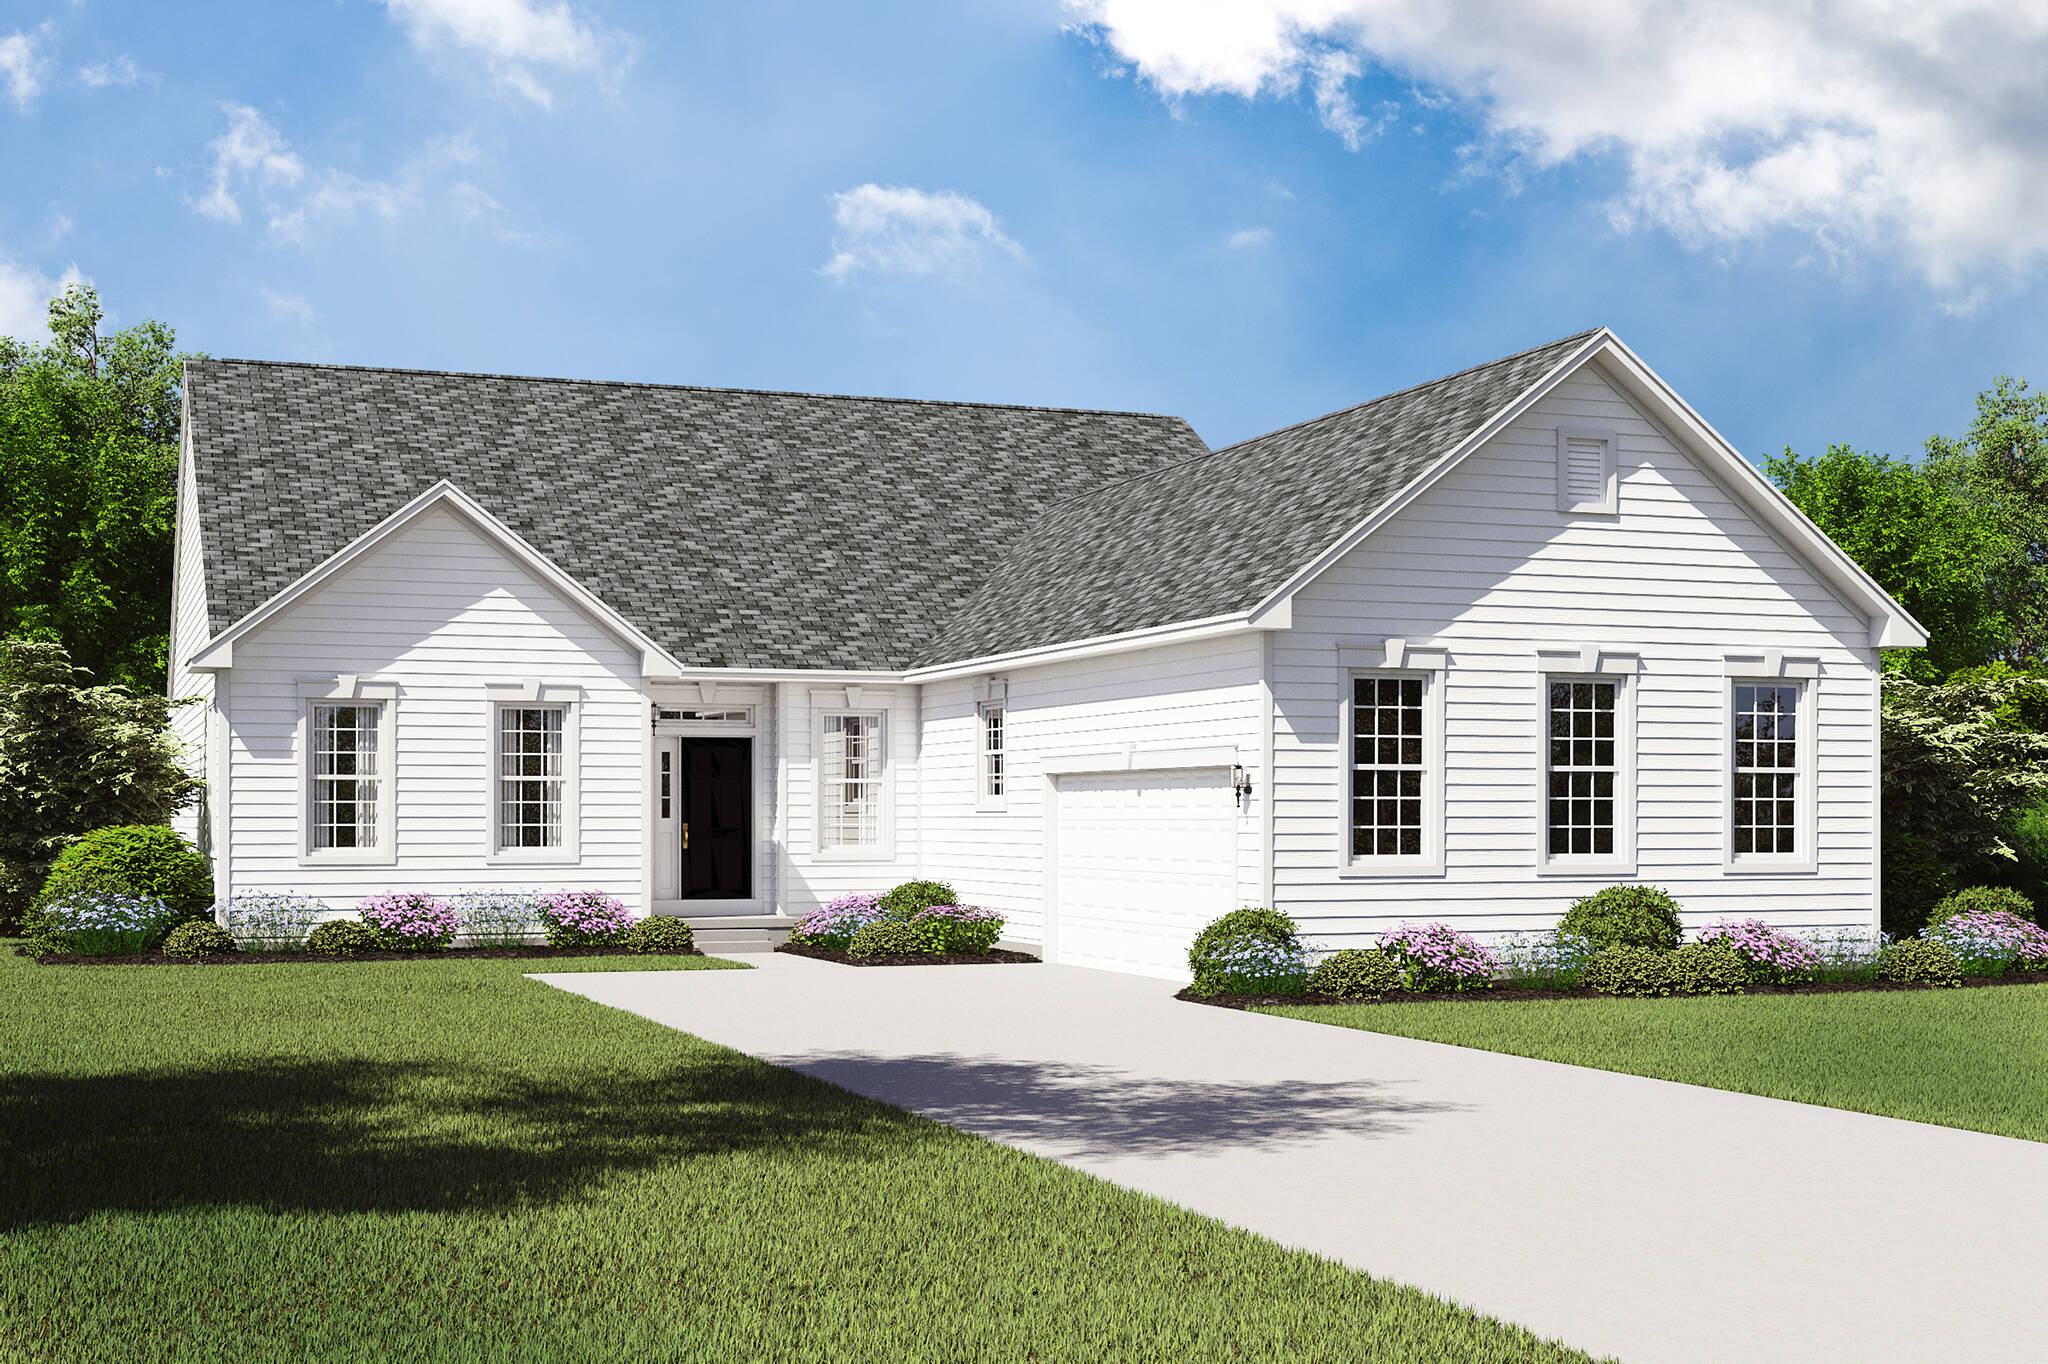 ravenna b preview new homes cleveland ohio